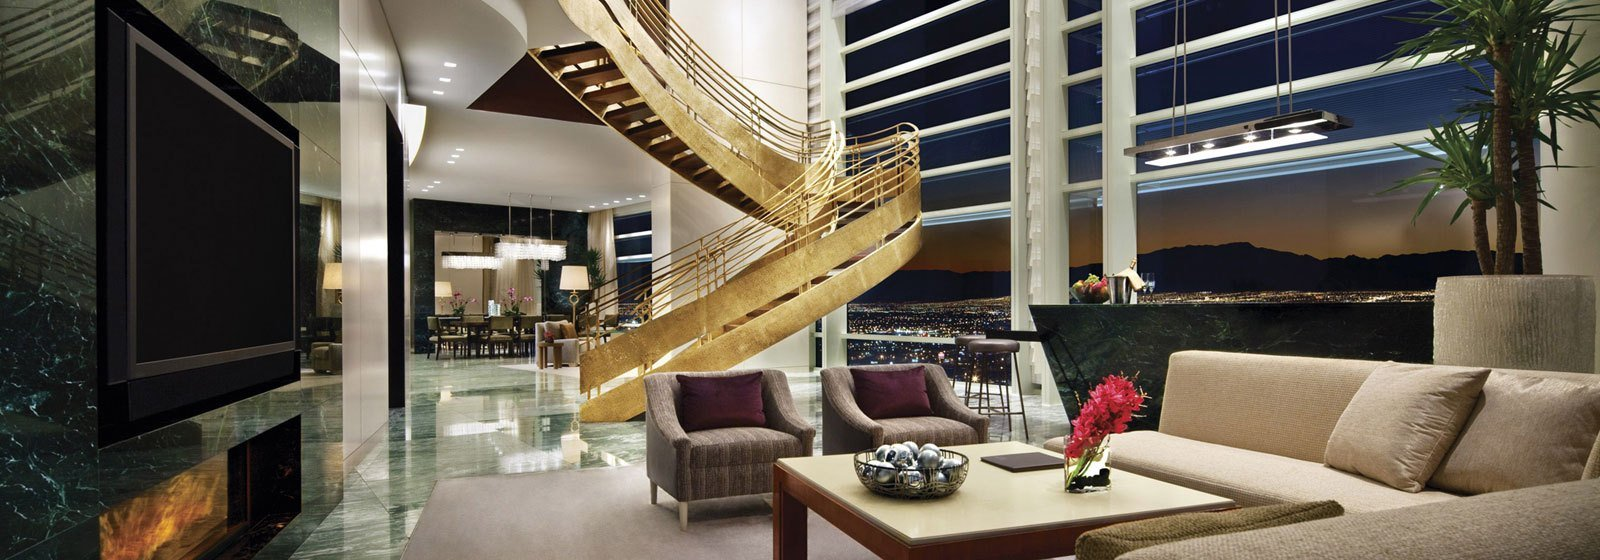 Best Guide To Best Suites In Las Vegas 2017 Deals With Pictures